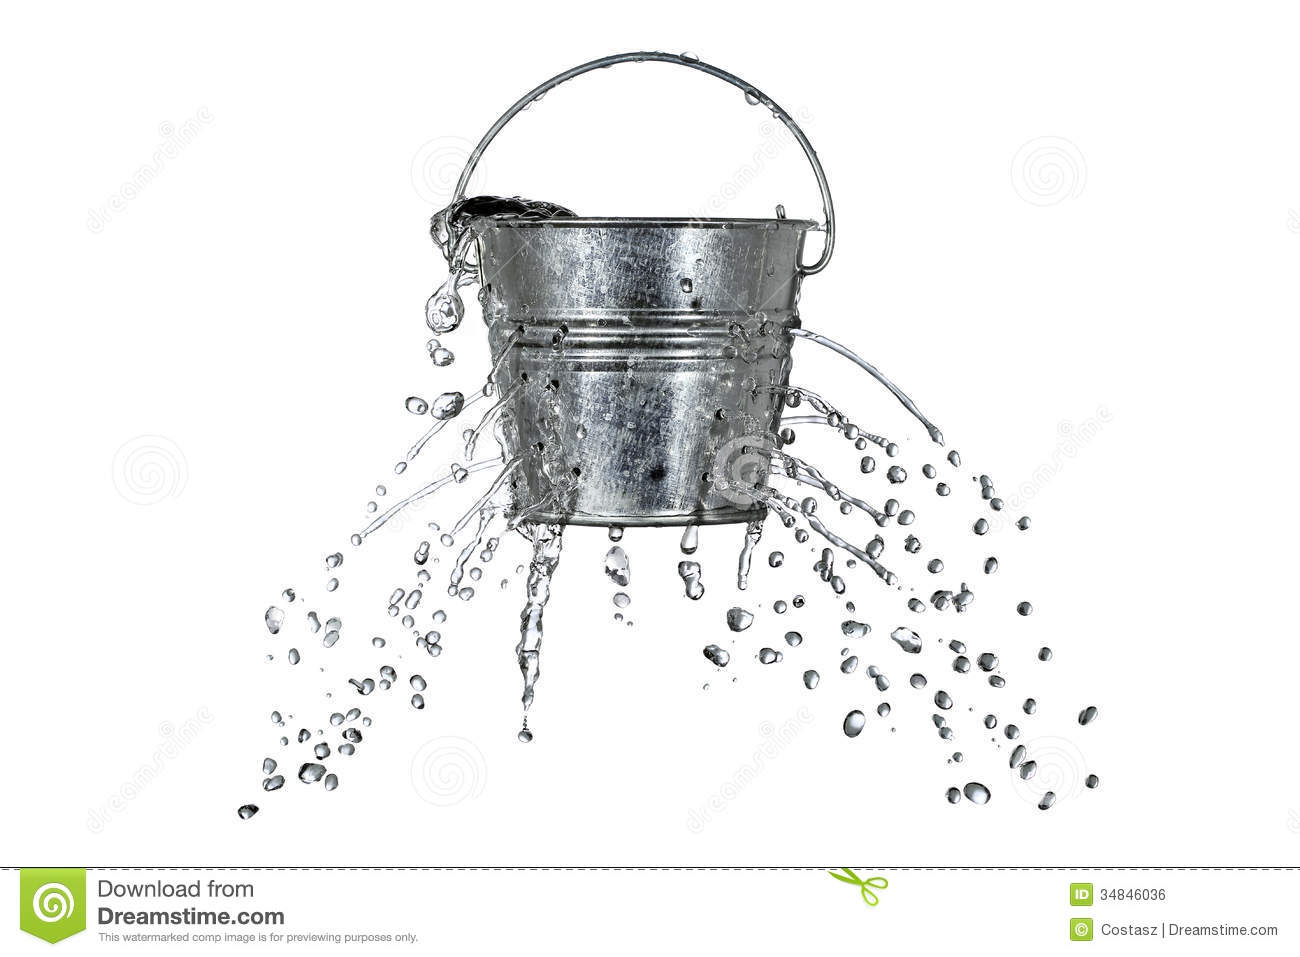 Bucket With Holes Royalty Free Stock Image  Image: 34846036